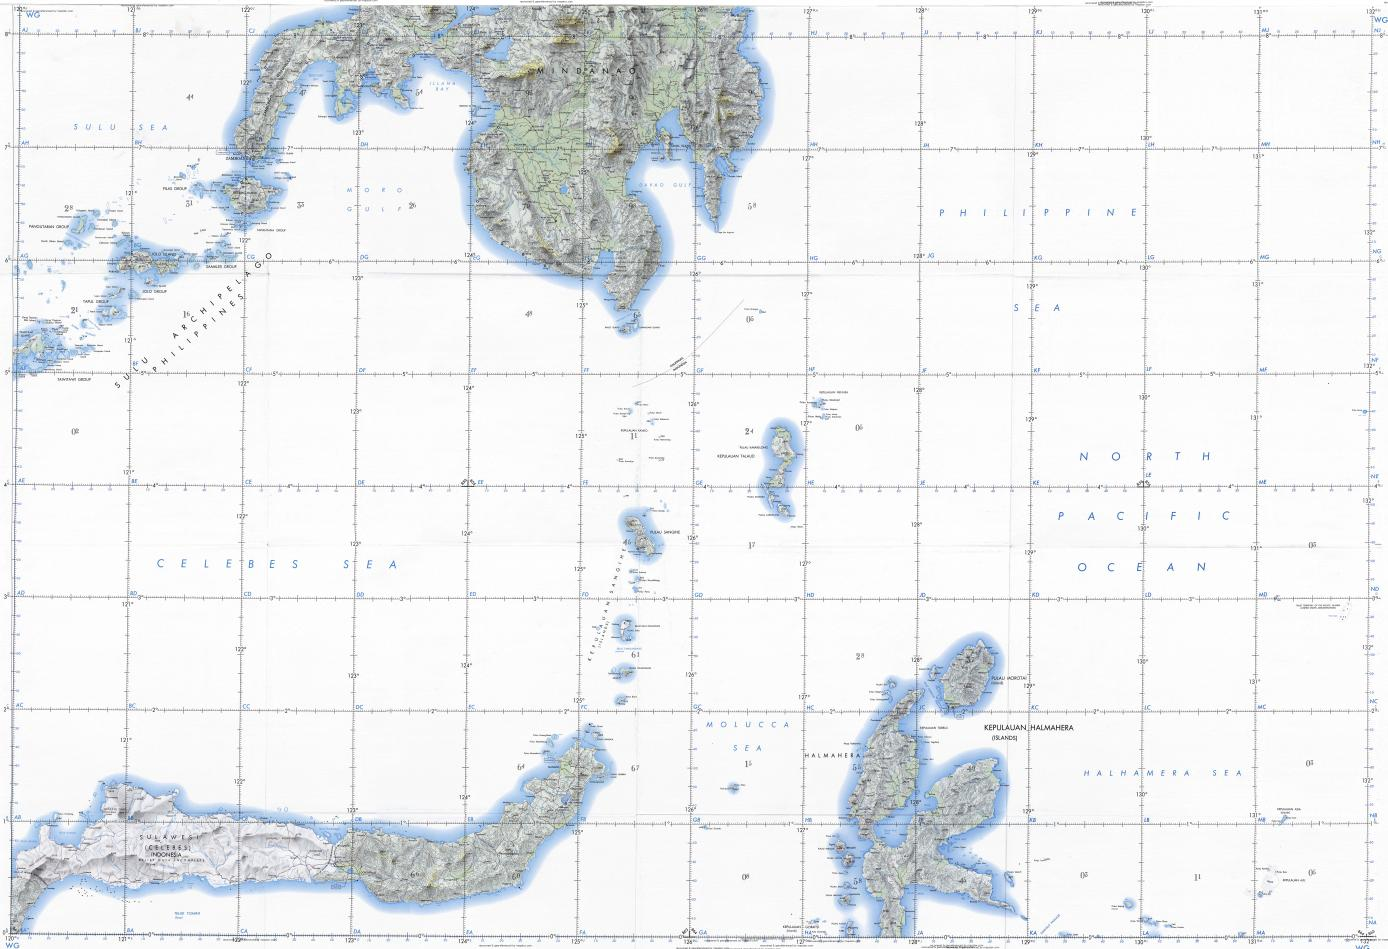 Download topographic map in area of Davao, Zamboanga ...